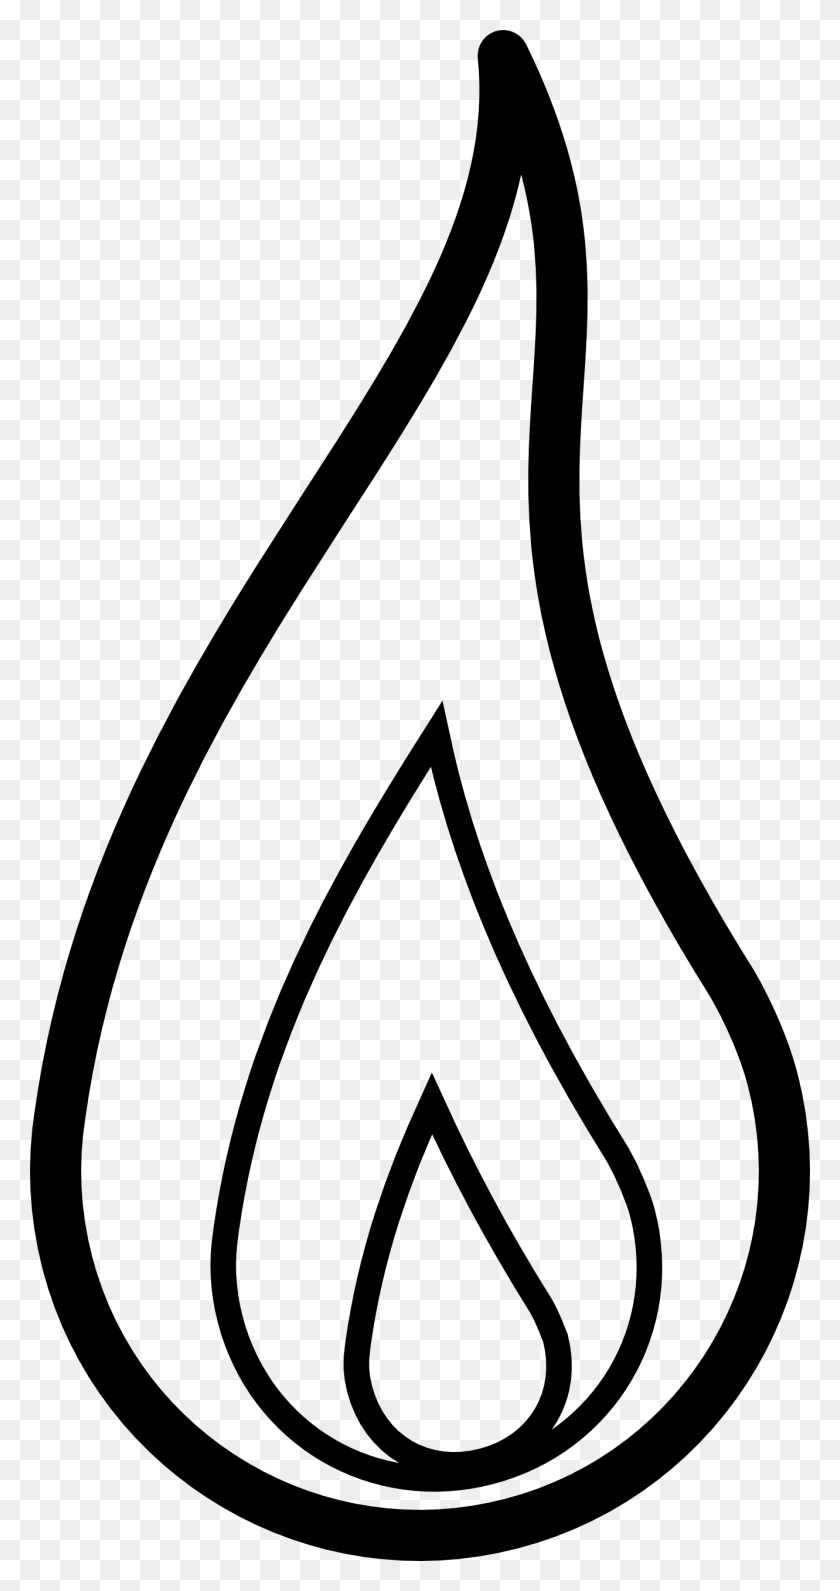 Fire Light Clipart - Candle Clipart Black And White - Png Download  (#2107070) - PinClipart